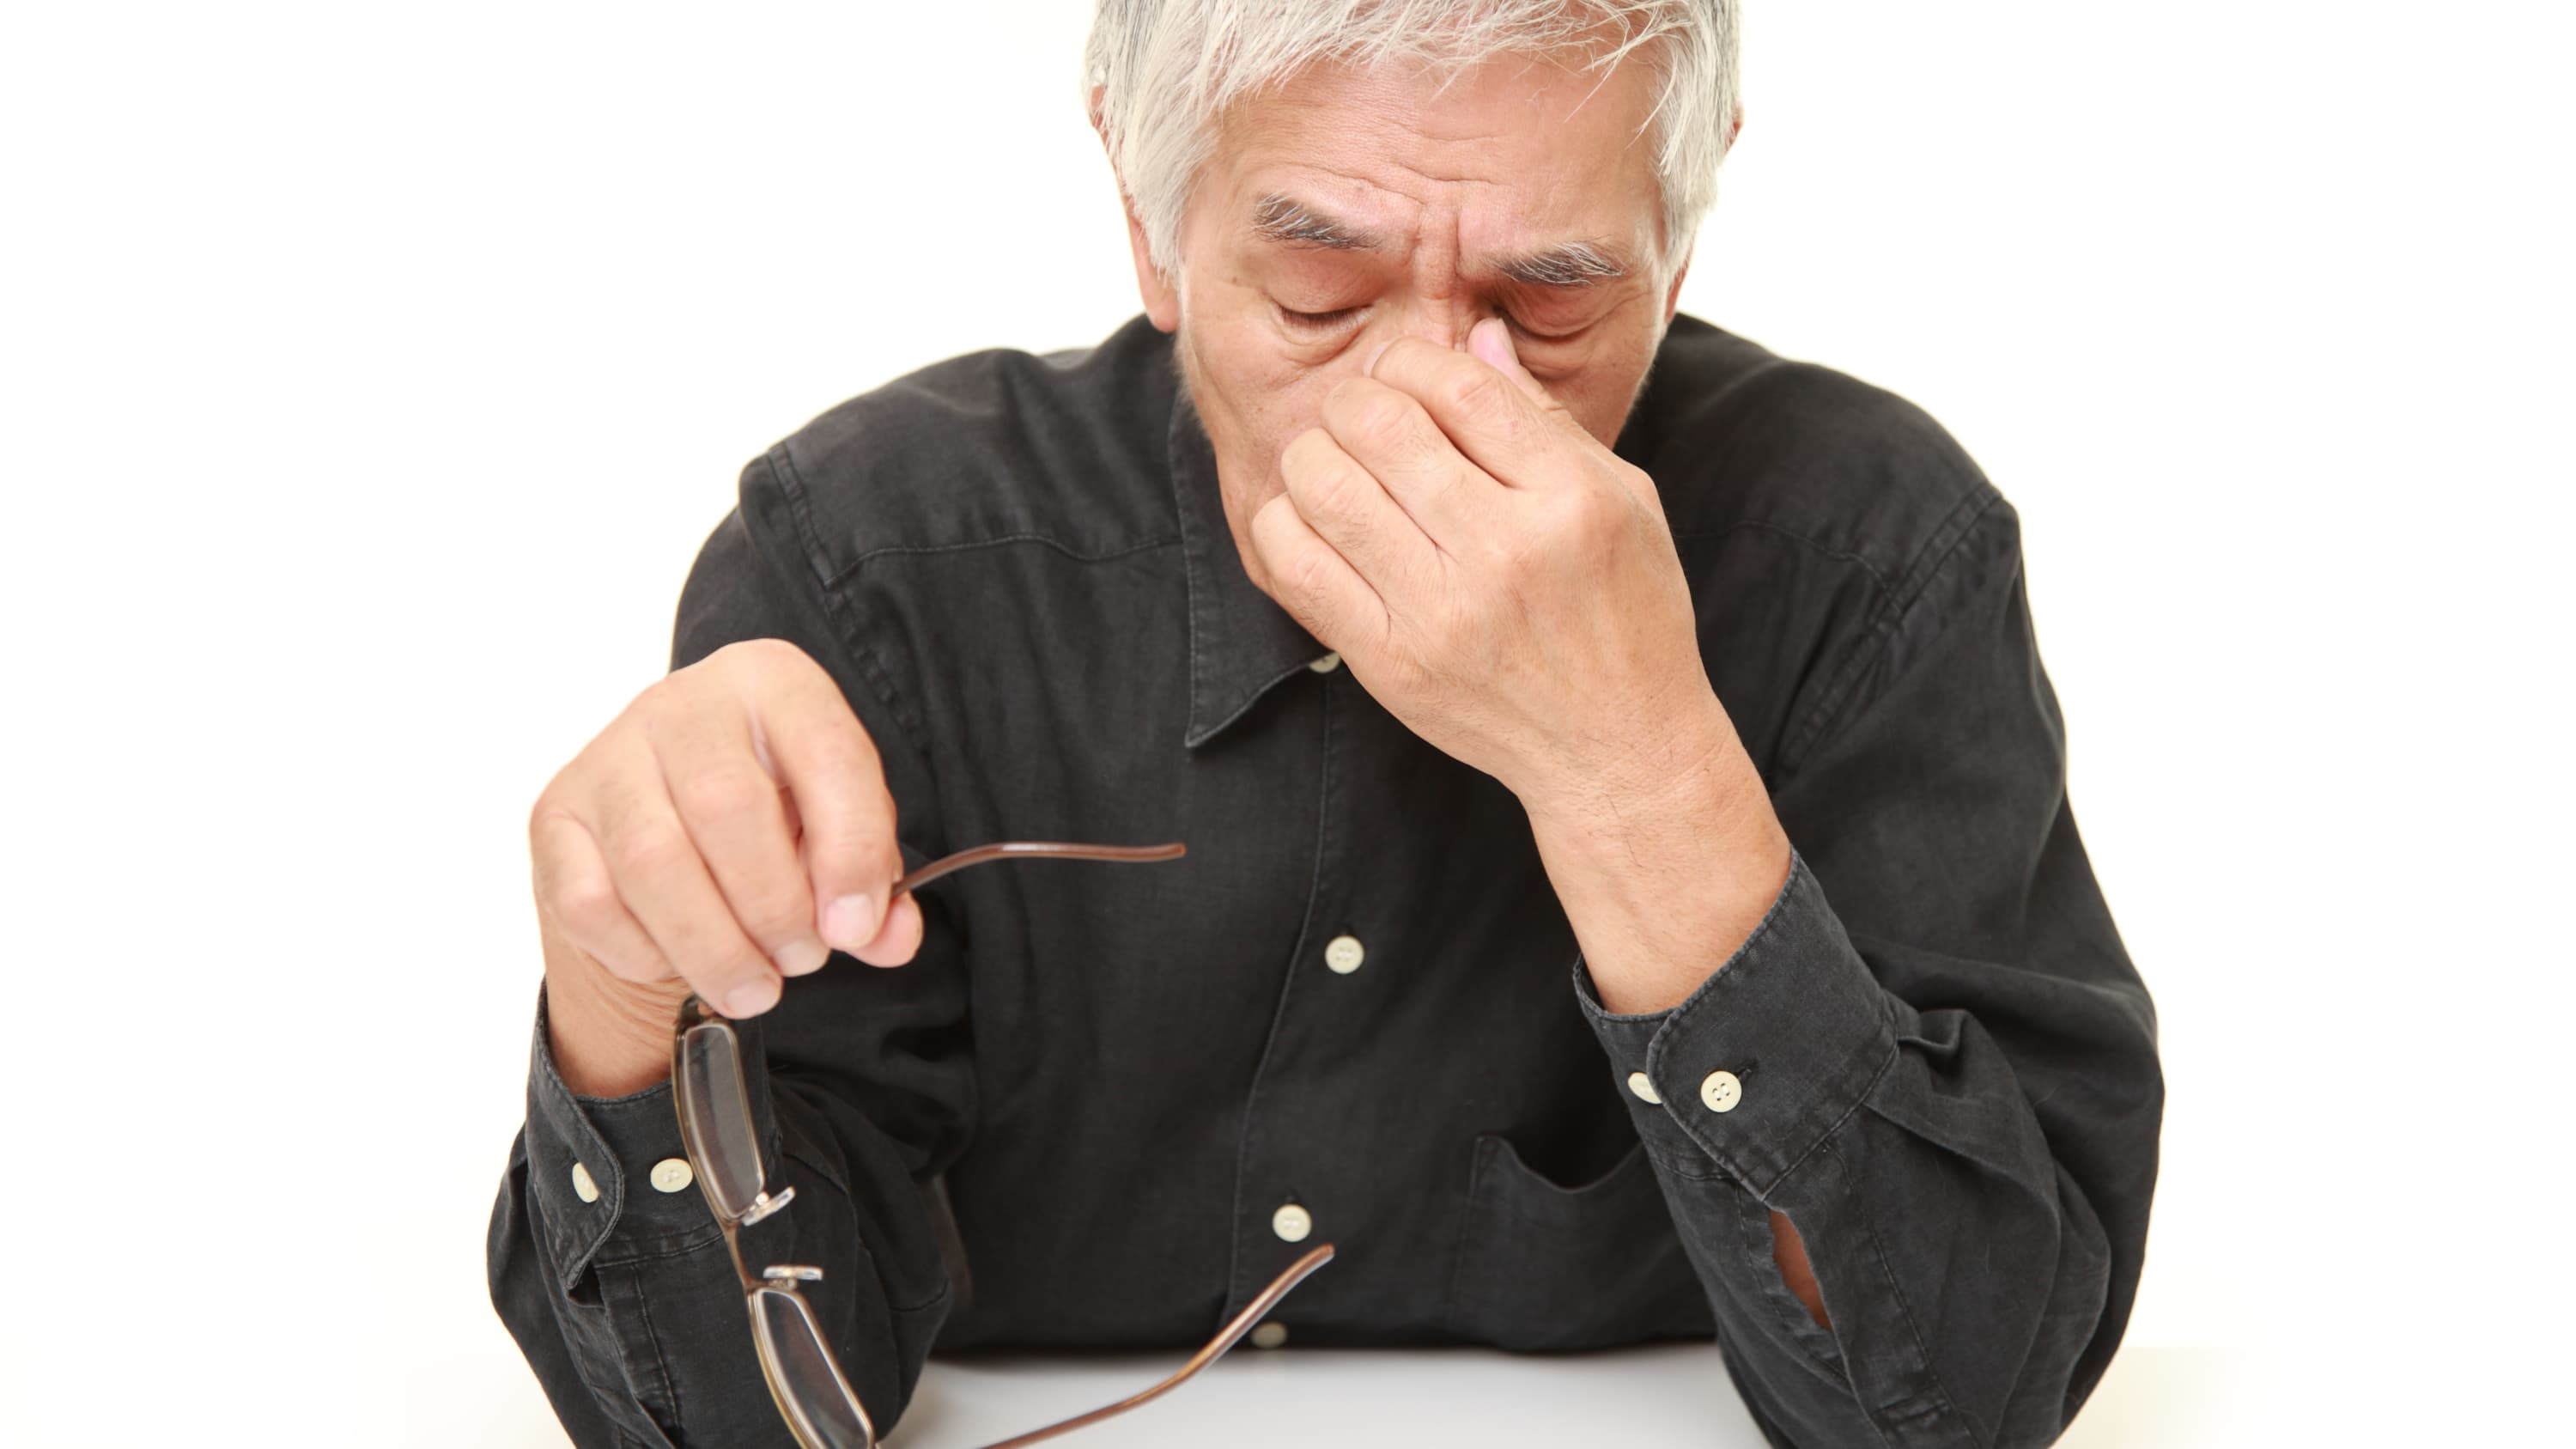 A man rubs his eyes, possibly because he has dry eyes.